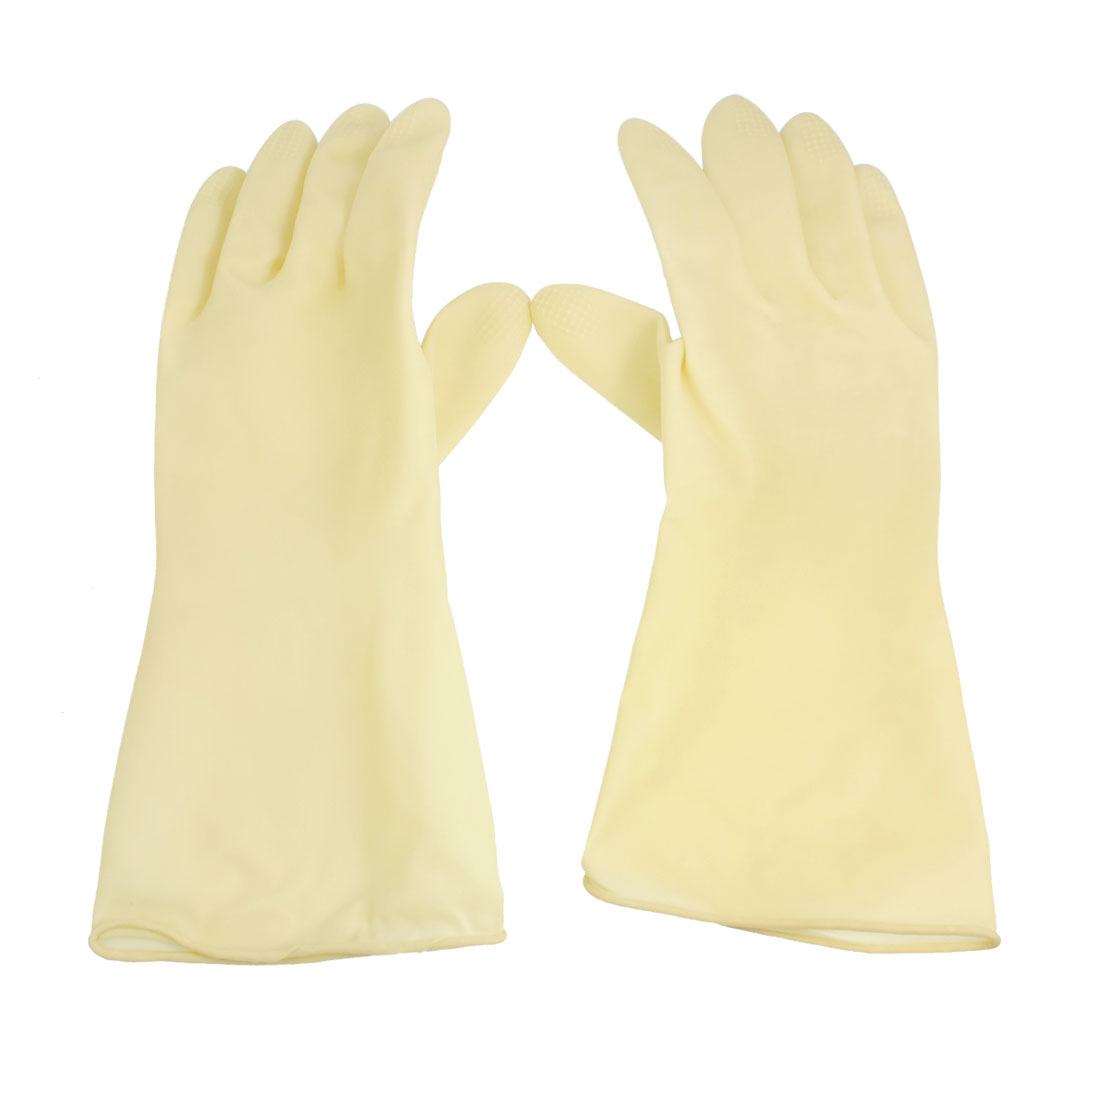 "Kitchen Nonslip Palm Finger Latex Rubber Cleaning Long Gloves 12.2"" Pair M"